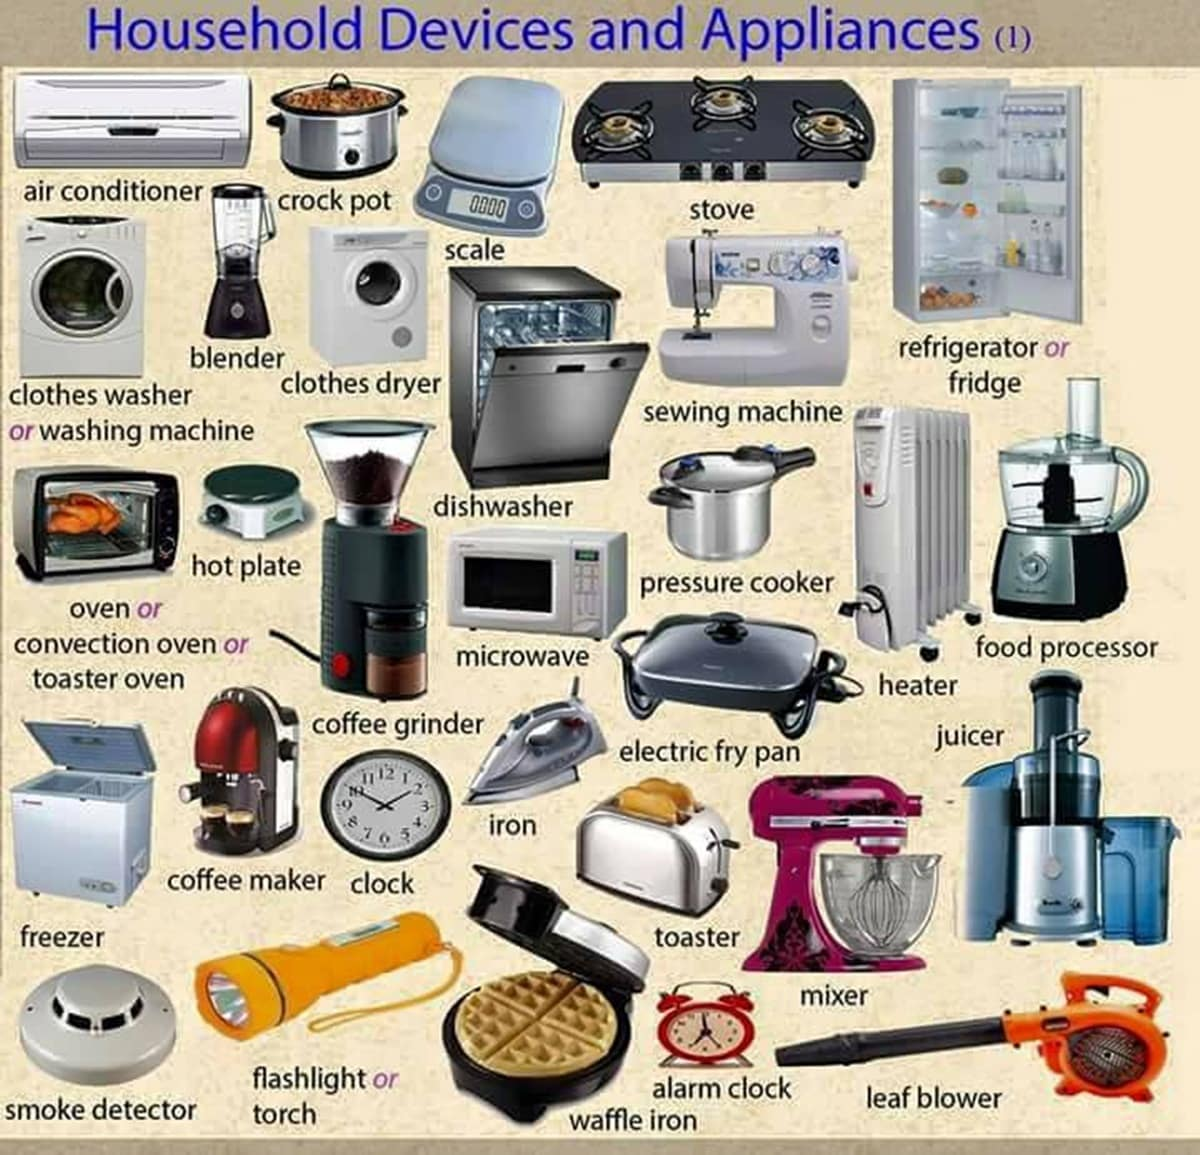 Tools, Equipment, Devices and Home Appliances Vocabulary: 300+ Items Illustrated 26